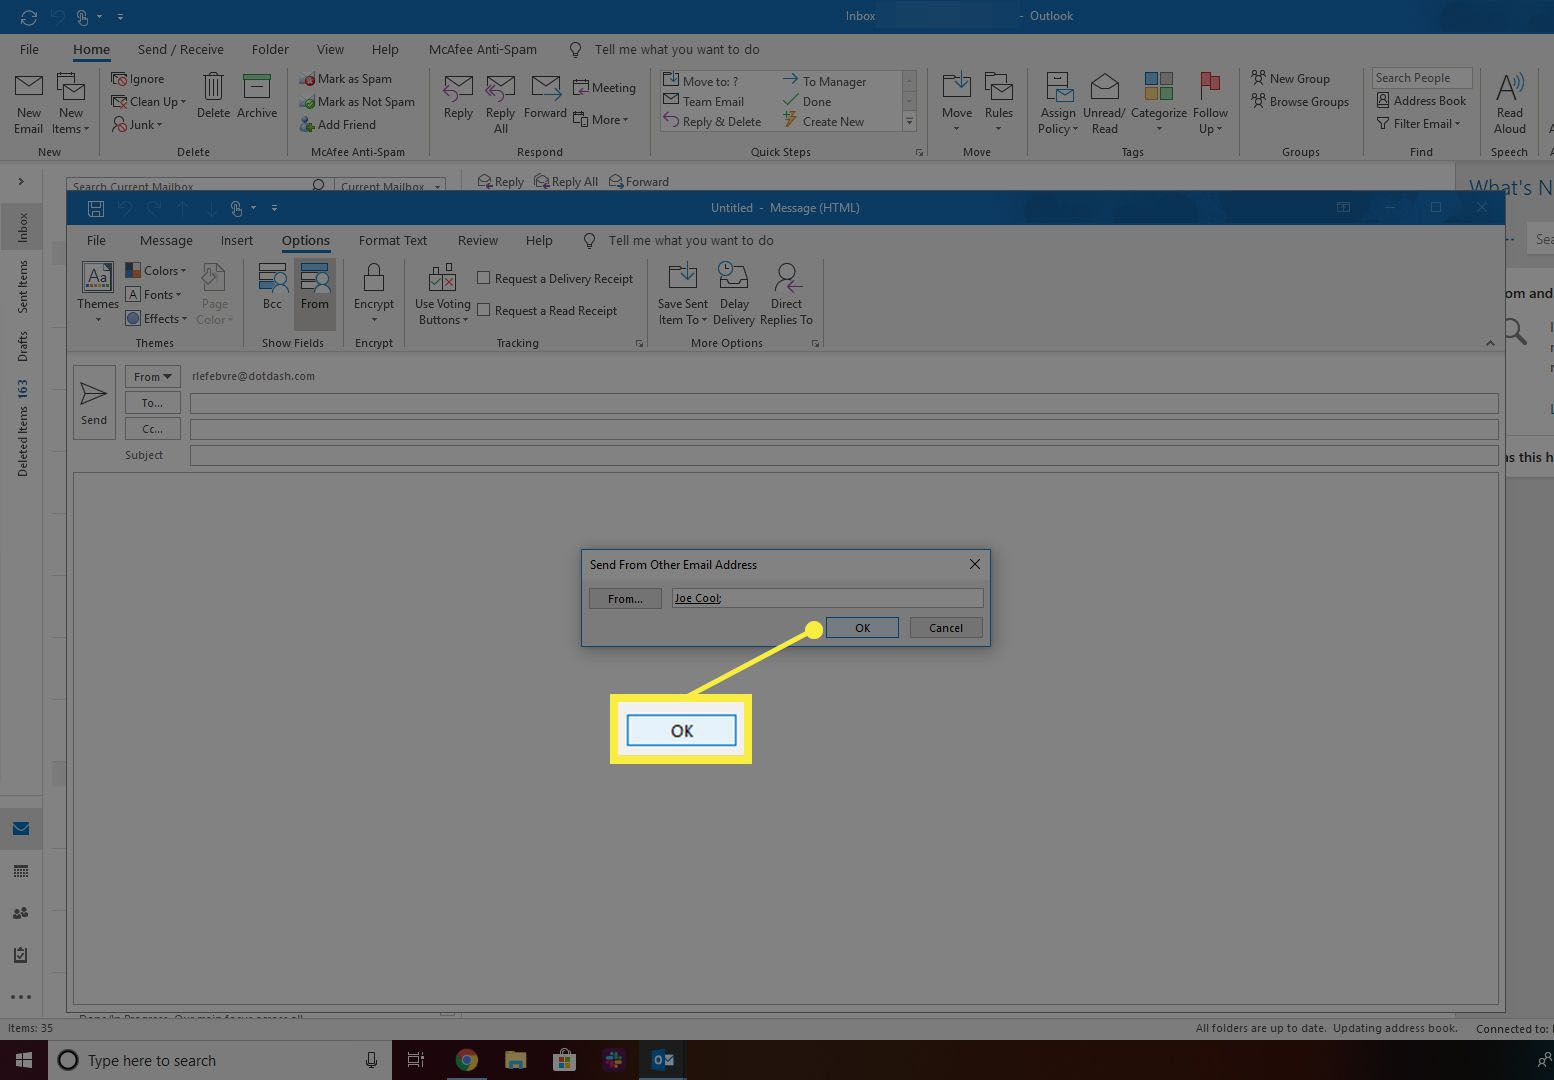 OK button in From address chooser for Outlook.